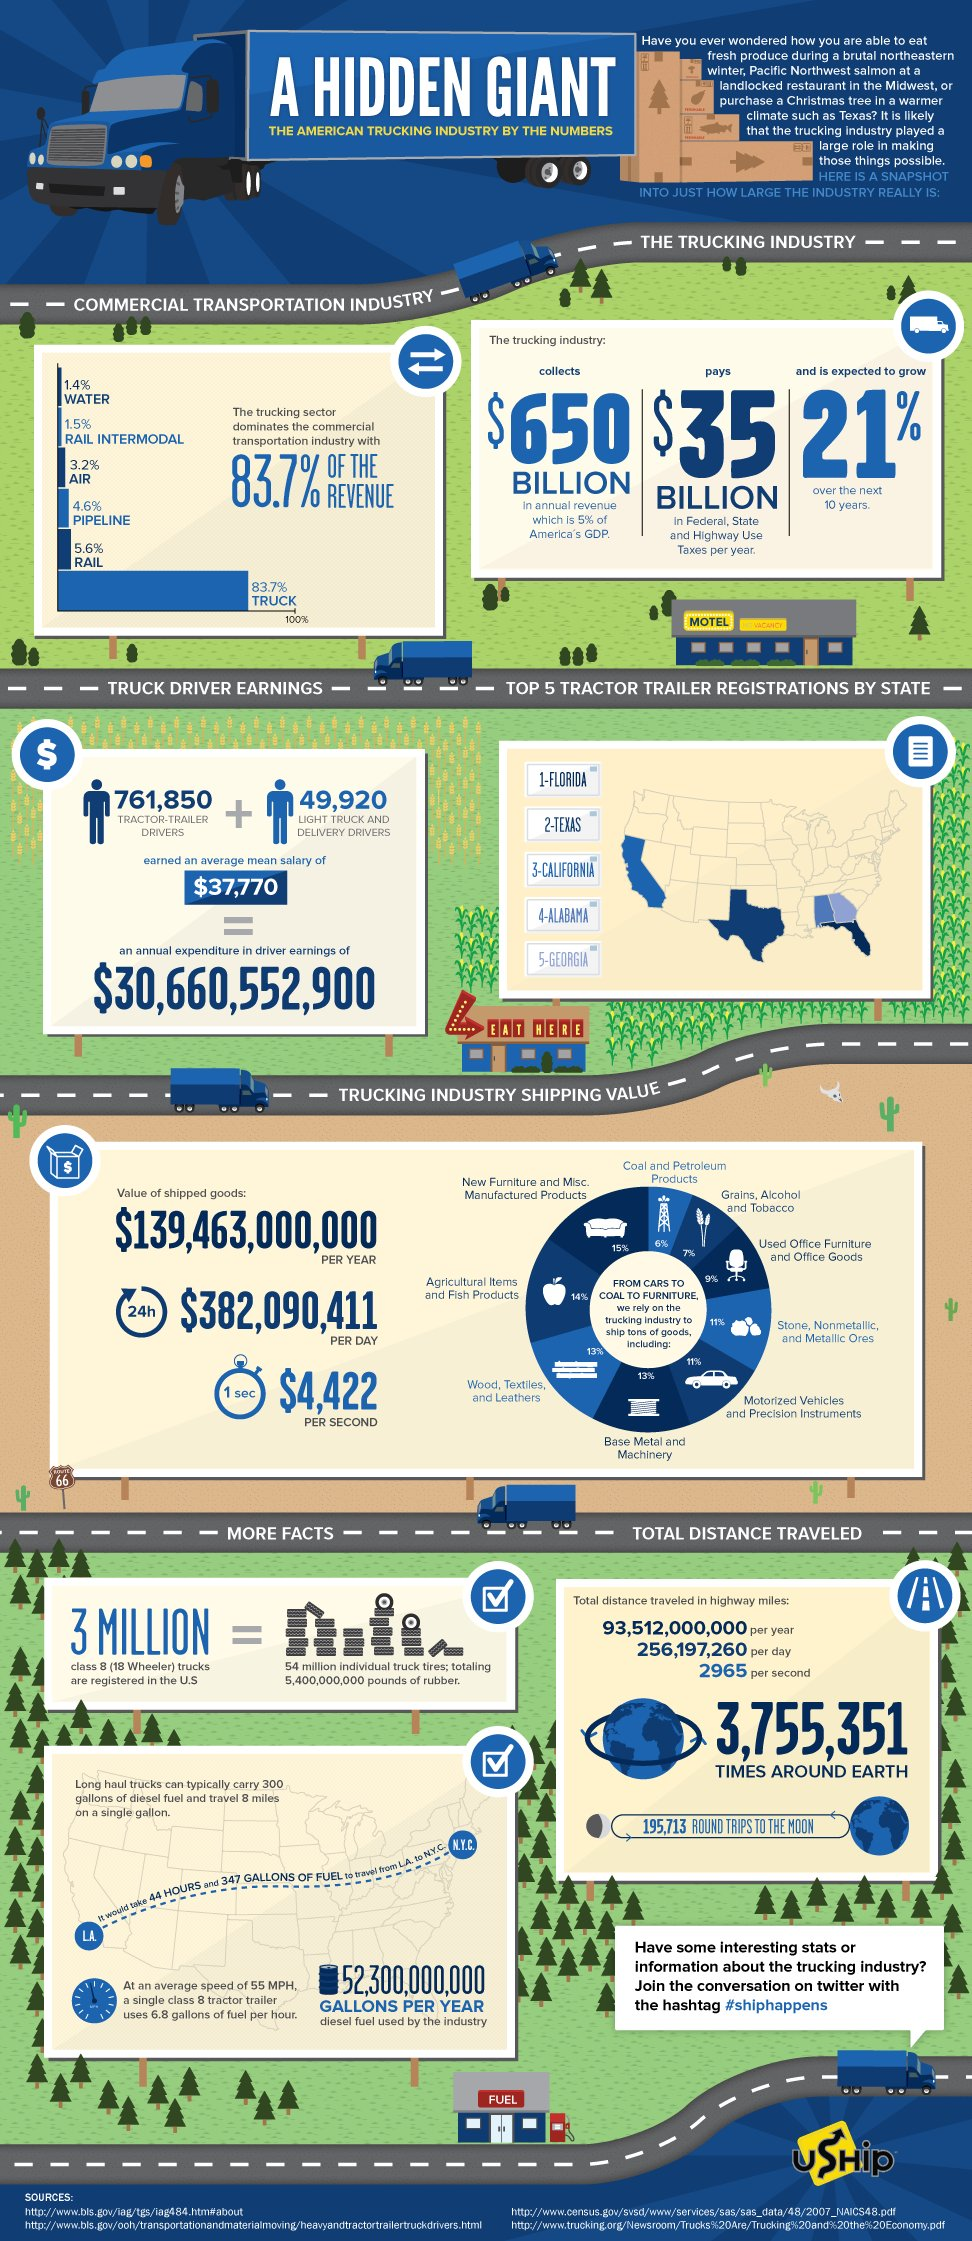 the american trucking industry - a hidden giant